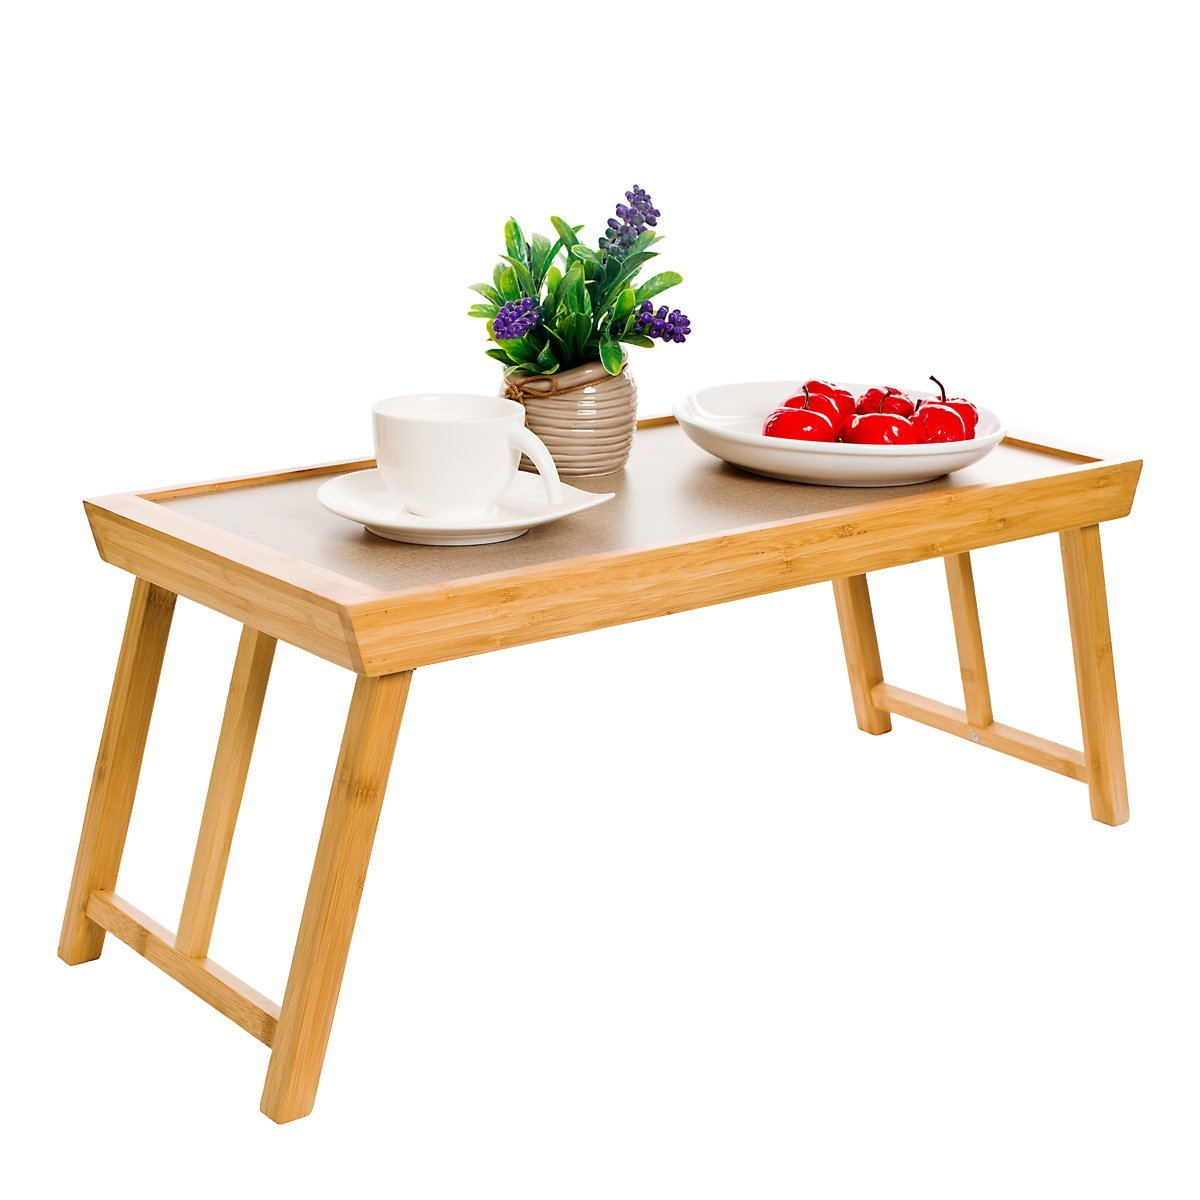 Bed Tray Table, Foldable Bamboo Breakfast Laptop Desk for Food Serving, Bed Reading, TV Watching, Outdoor Camping, Children Gaming and Handwork